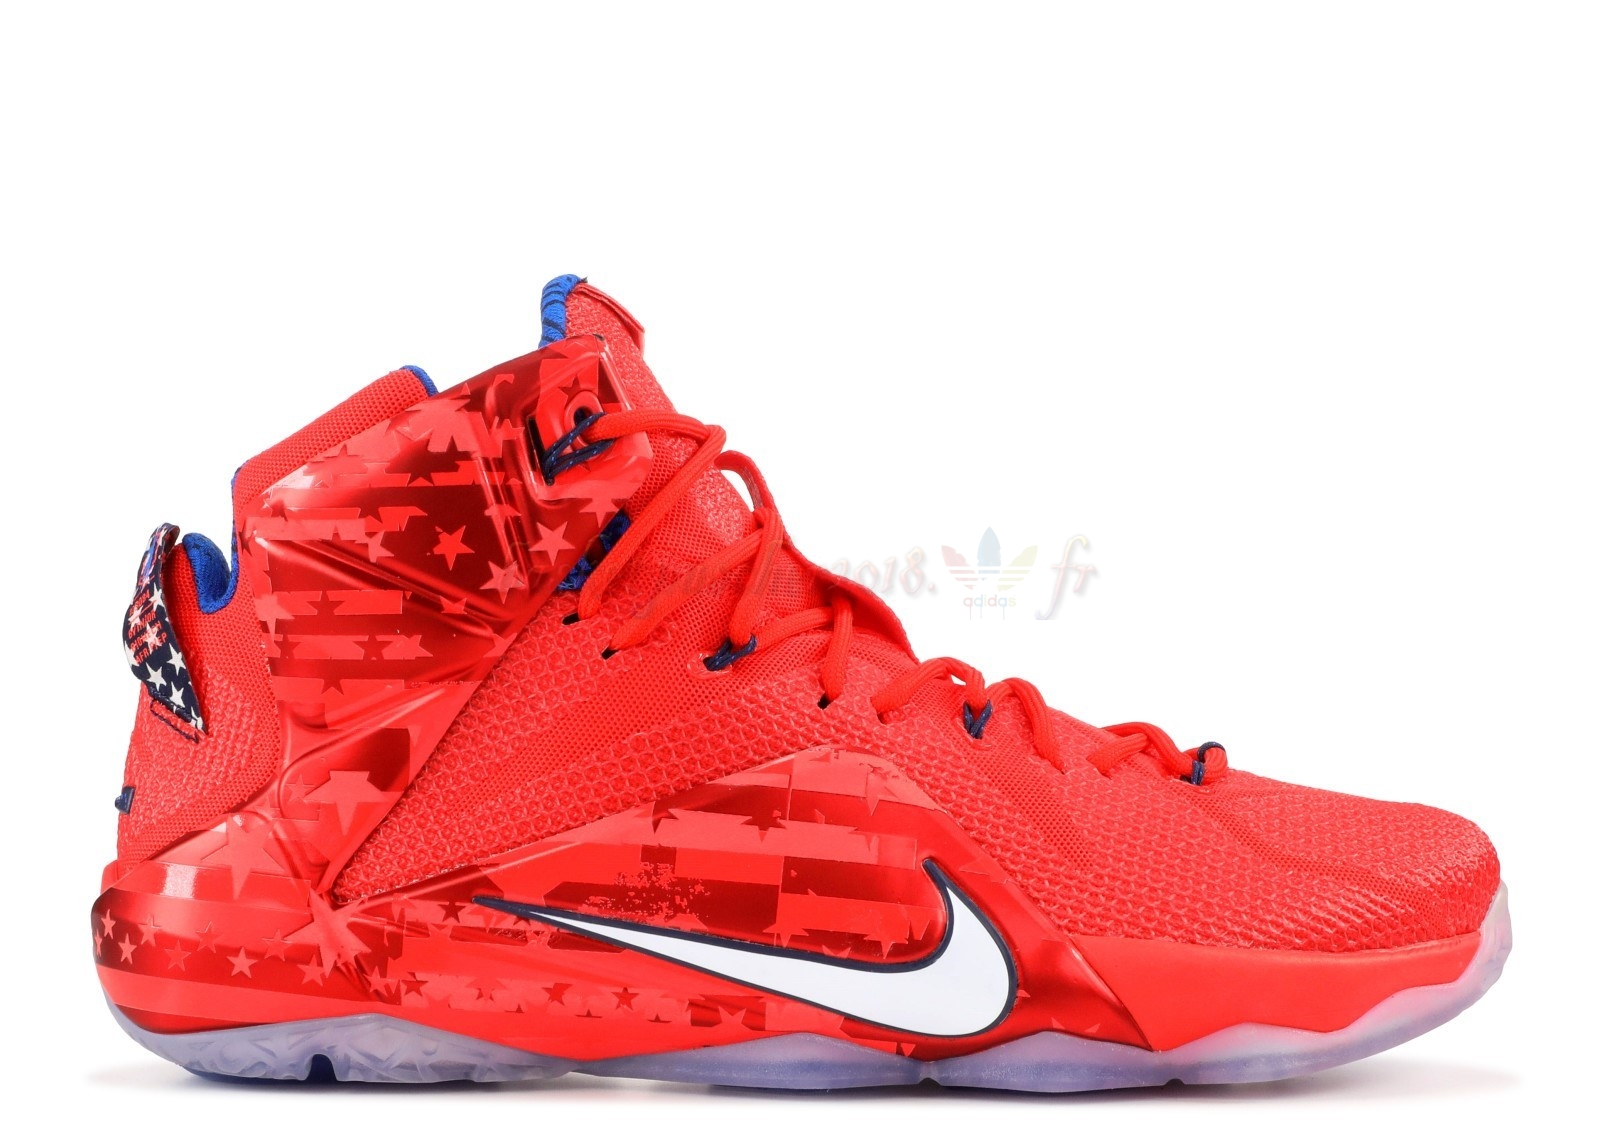 "Vente Chaude Chaussures De Basketball Homme Nike Lebron Xii 12 ""Usa"" Rouge Pas Cher"